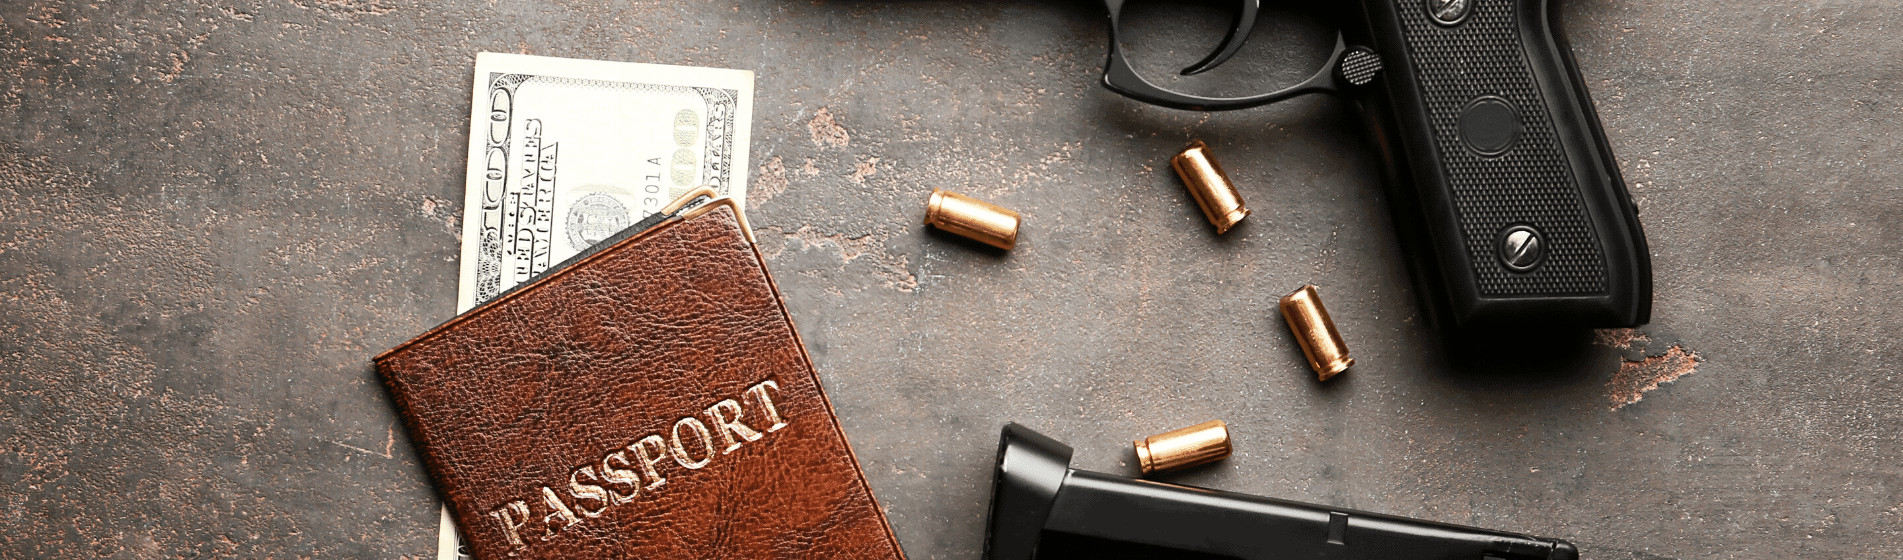 Can You Get a Second Passport with a Criminal Record?